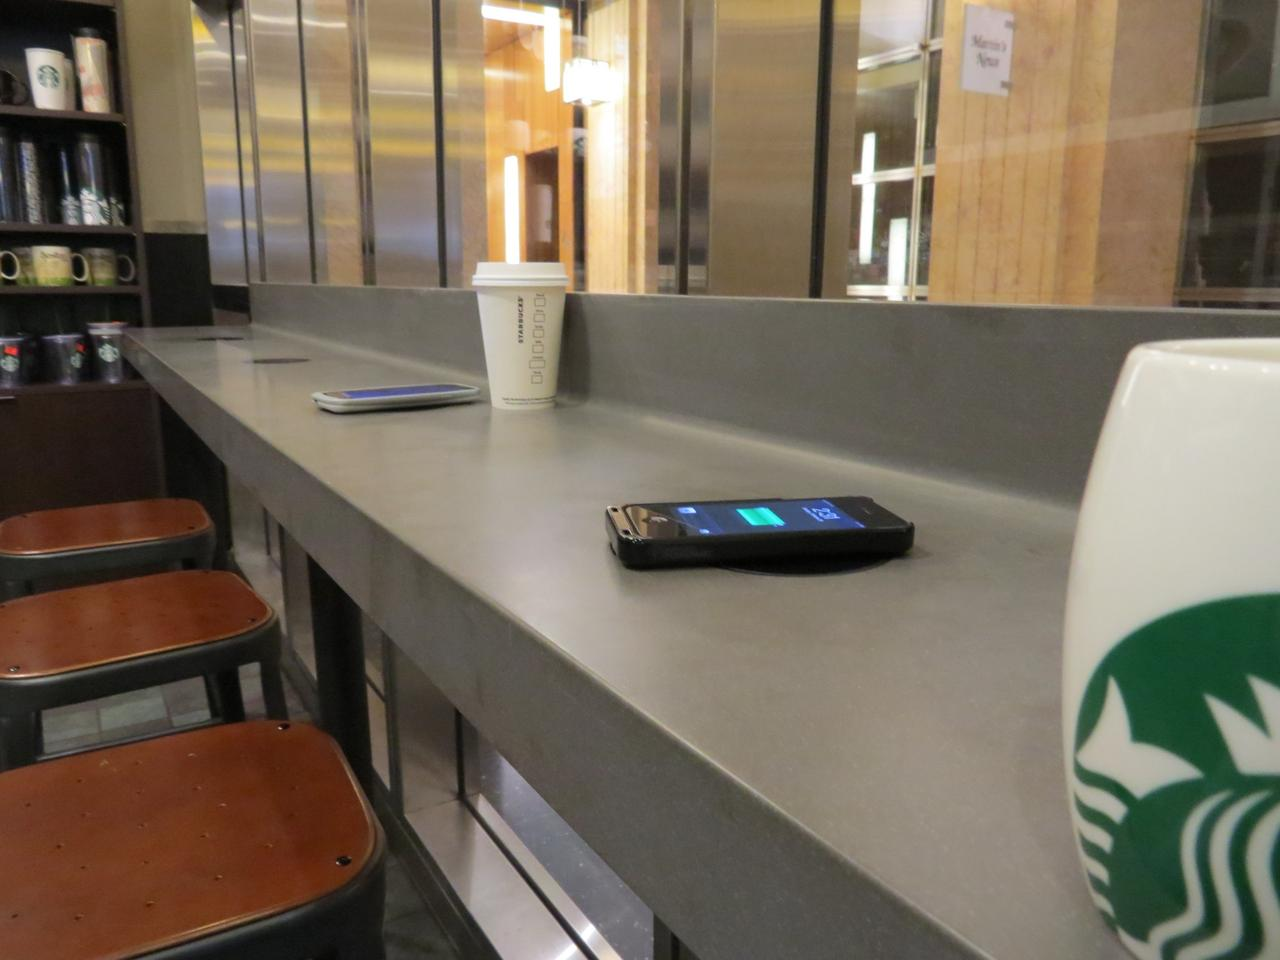 A nationwide rollout will see every Starbucks store in the US fitted with wireless charging mats